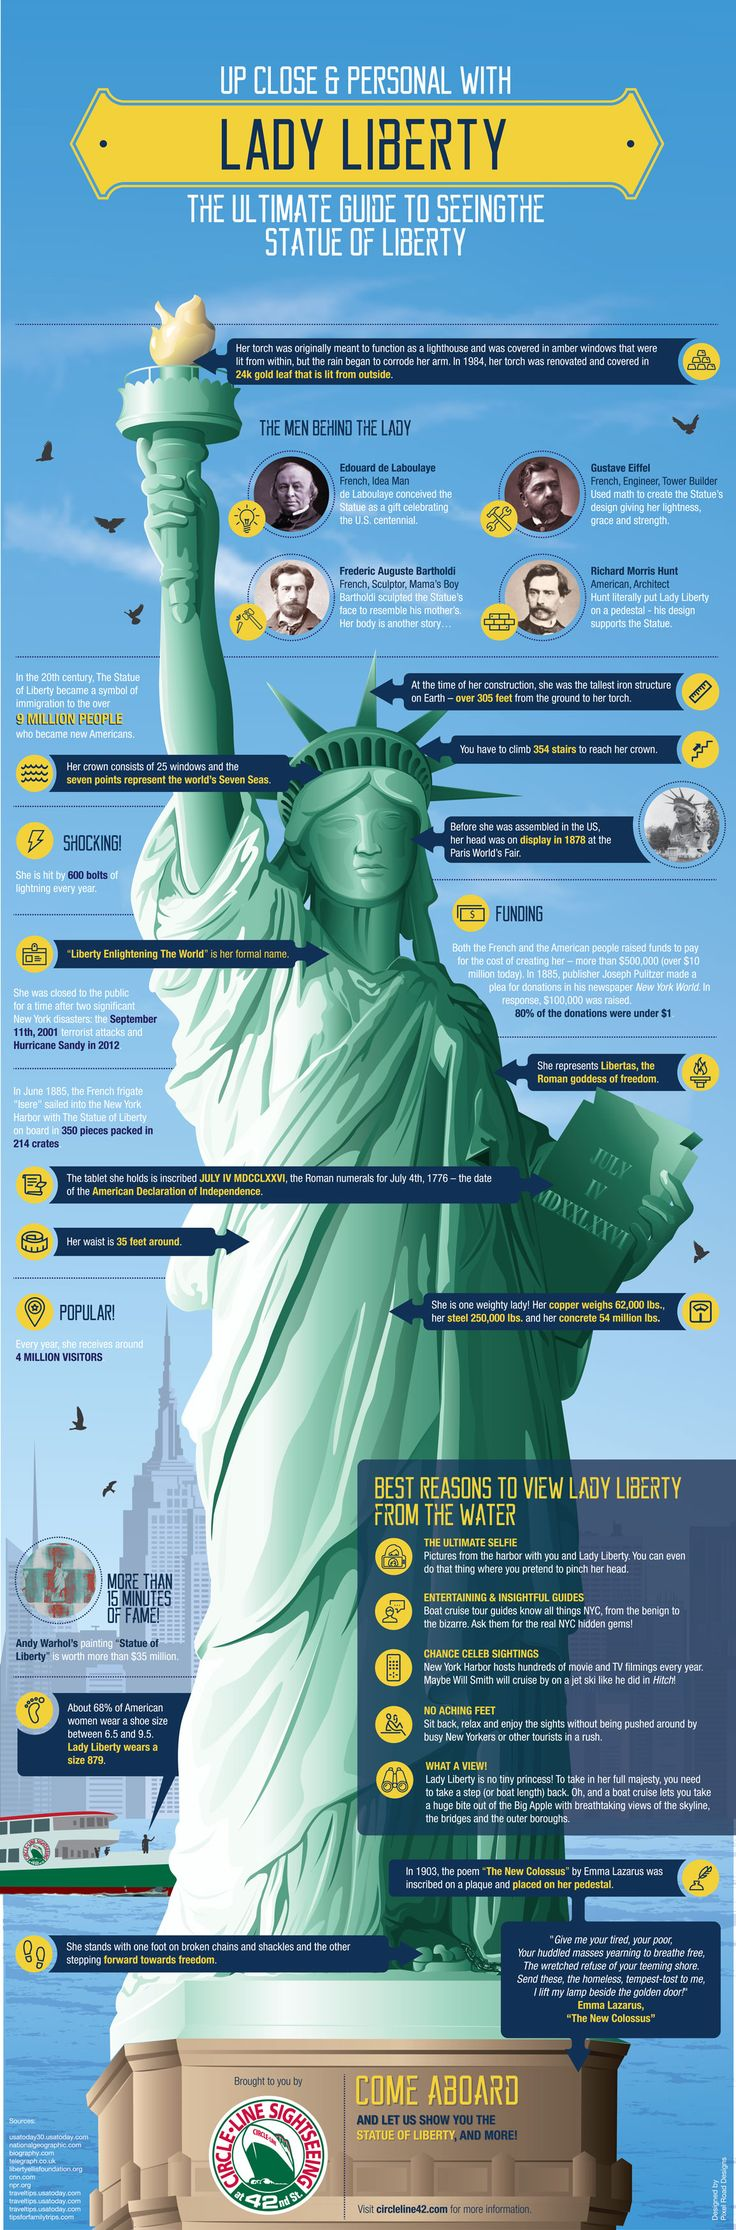 Up Close & Personal With Lady Liberty: The Ultimate Guide To Seeing The Statue Of Liberty